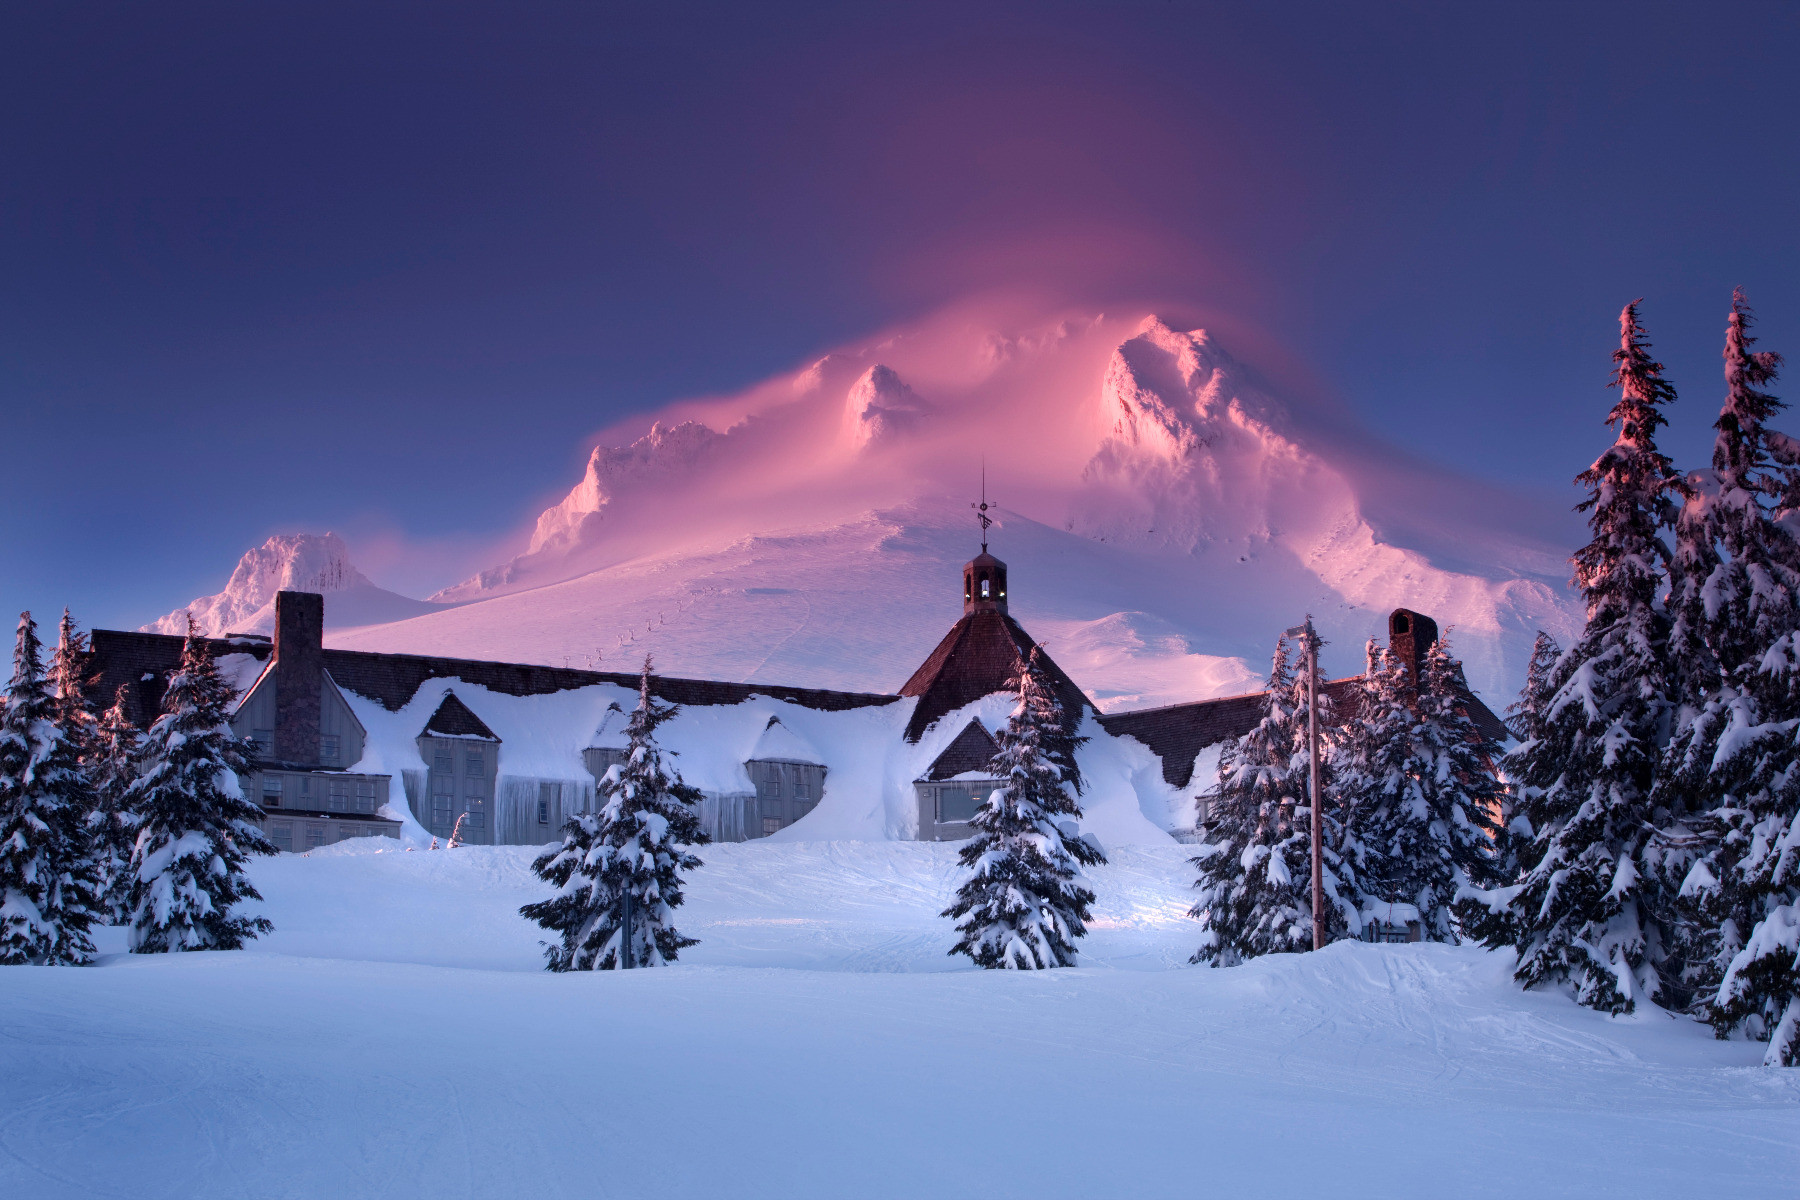 Snow-buried Timberline Lodge sits on Mt. Hoodundefined